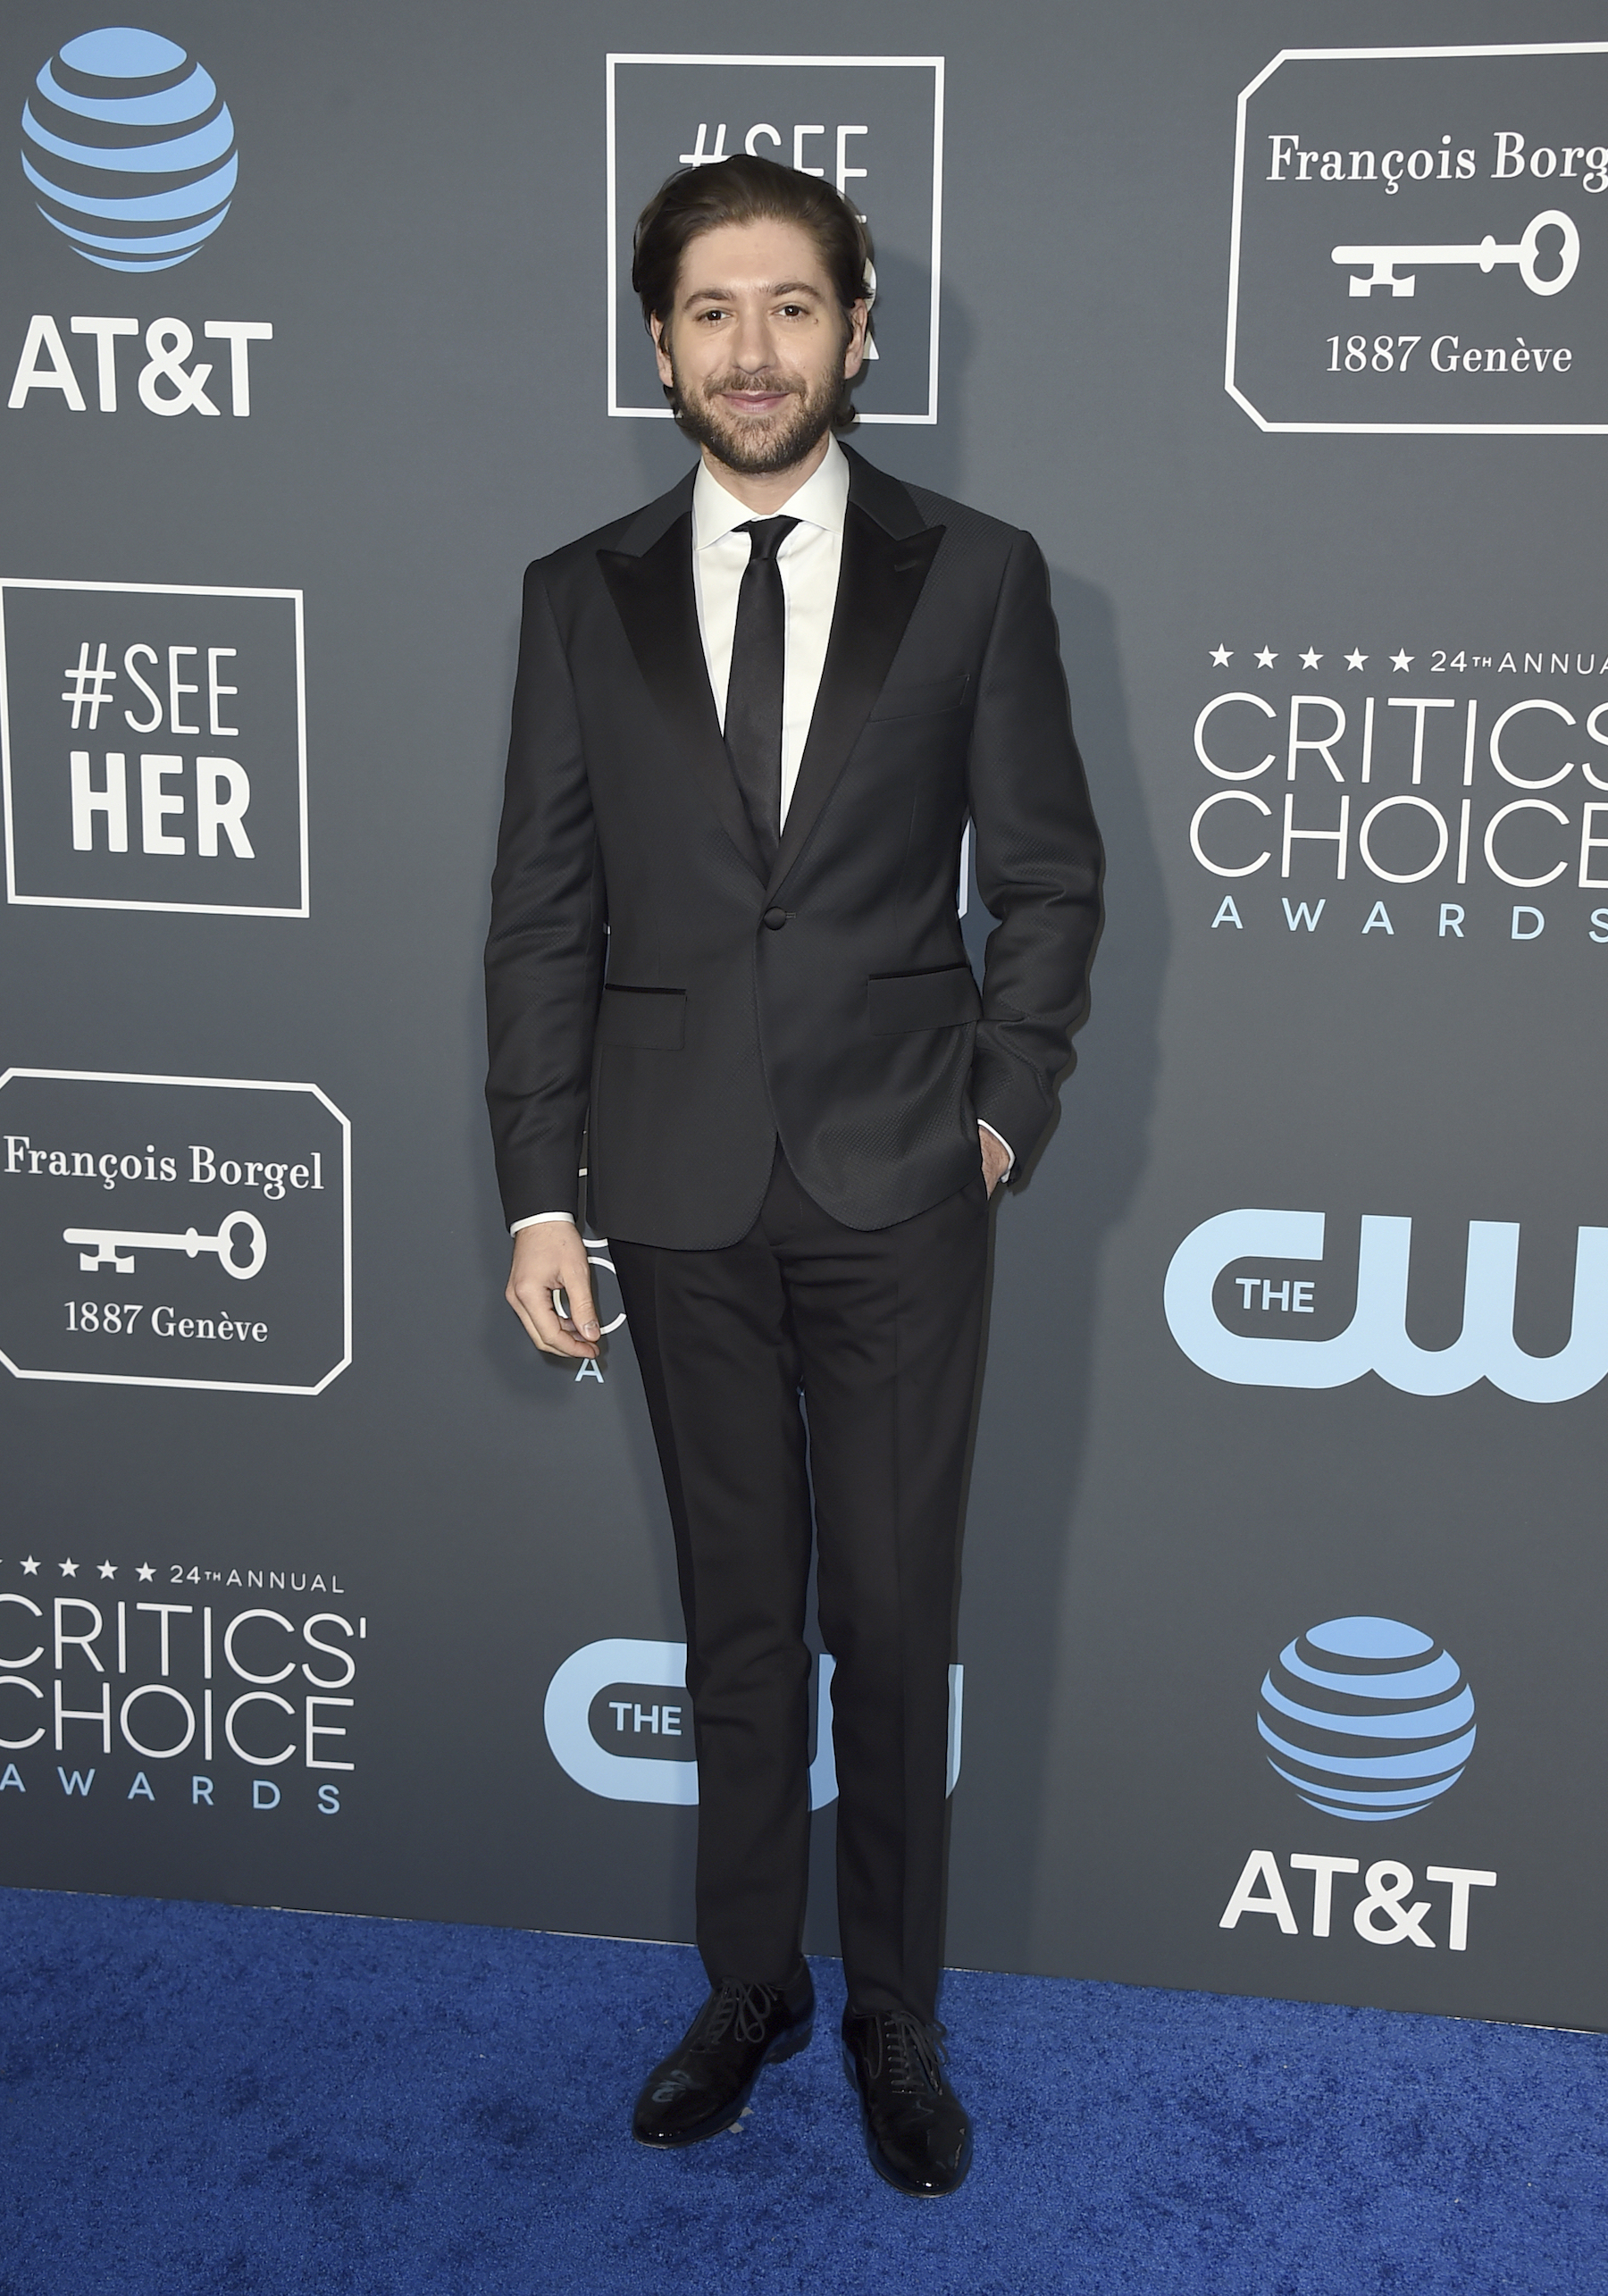 "<div class=""meta image-caption""><div class=""origin-logo origin-image ap""><span>AP</span></div><span class=""caption-text"">Michael Zegen arrives at the 24th annual Critics' Choice Awards on Sunday, Jan. 13, 2019, at the Barker Hangar in Santa Monica, Calif. (Jordan Strauss/Invision/AP)</span></div>"